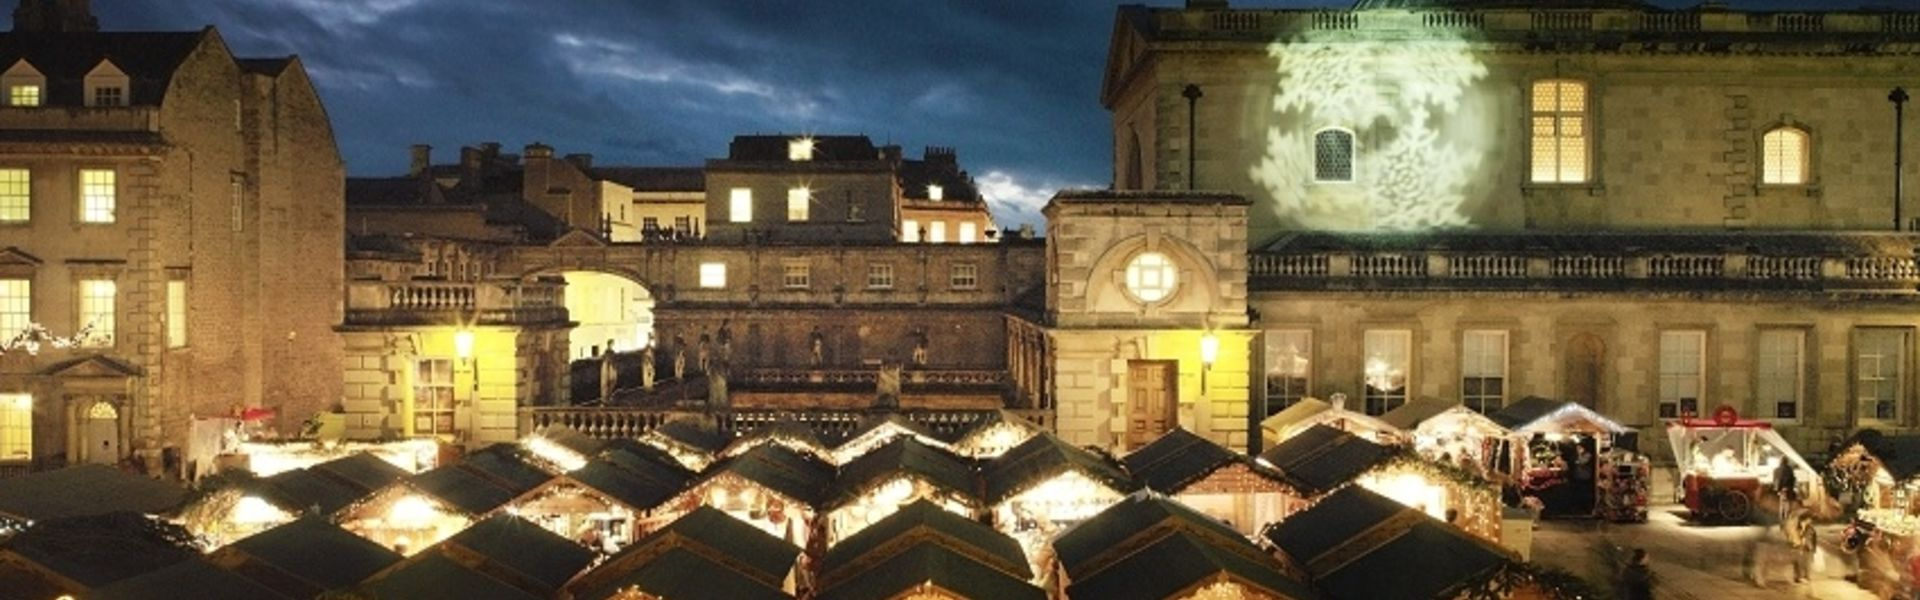 Accessible Christmas markets